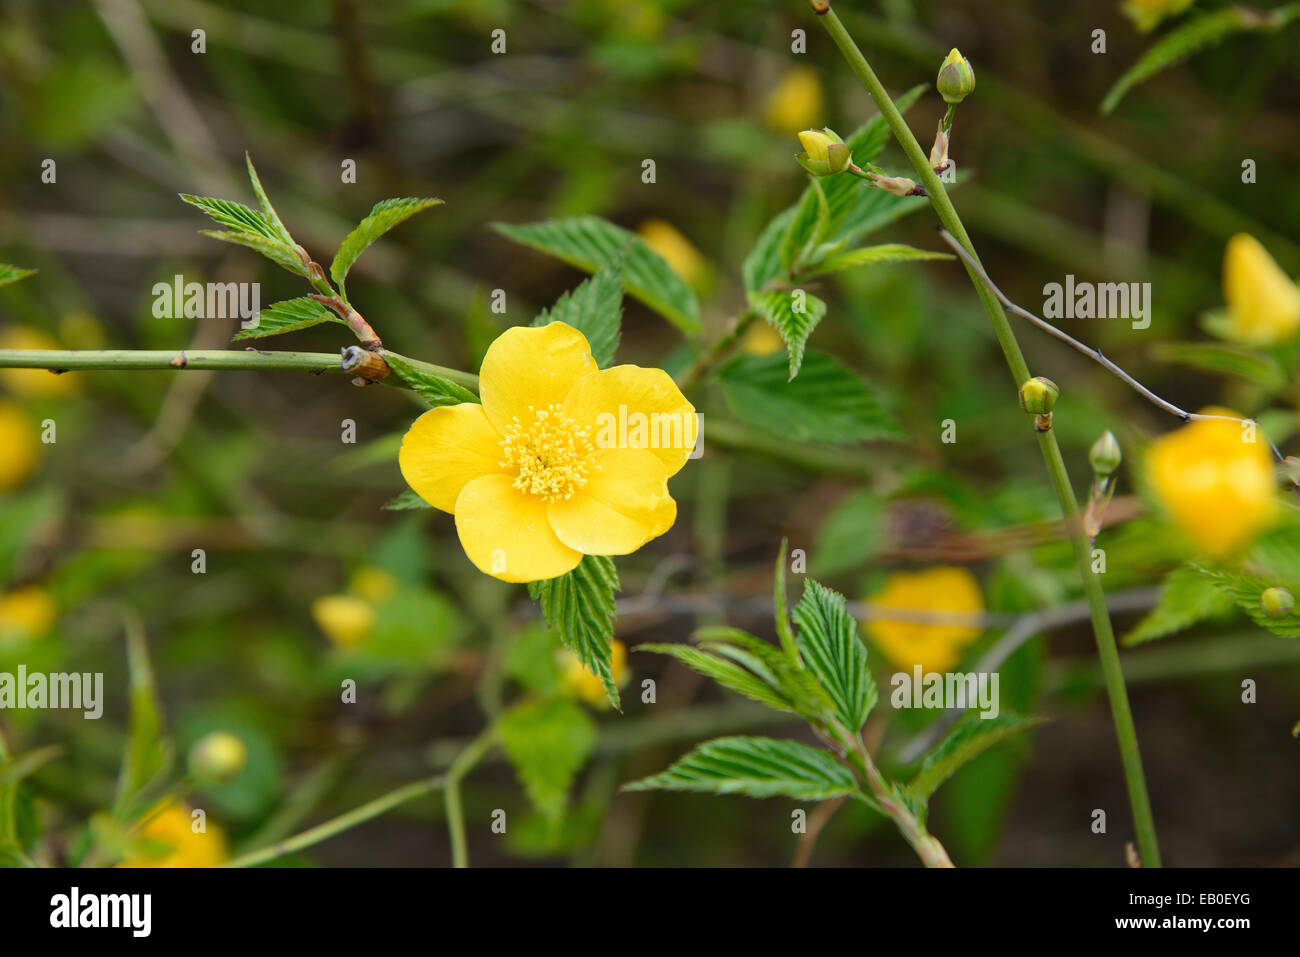 Closeup Of A Yellow Flower Which Has Five Petals Stock Photo